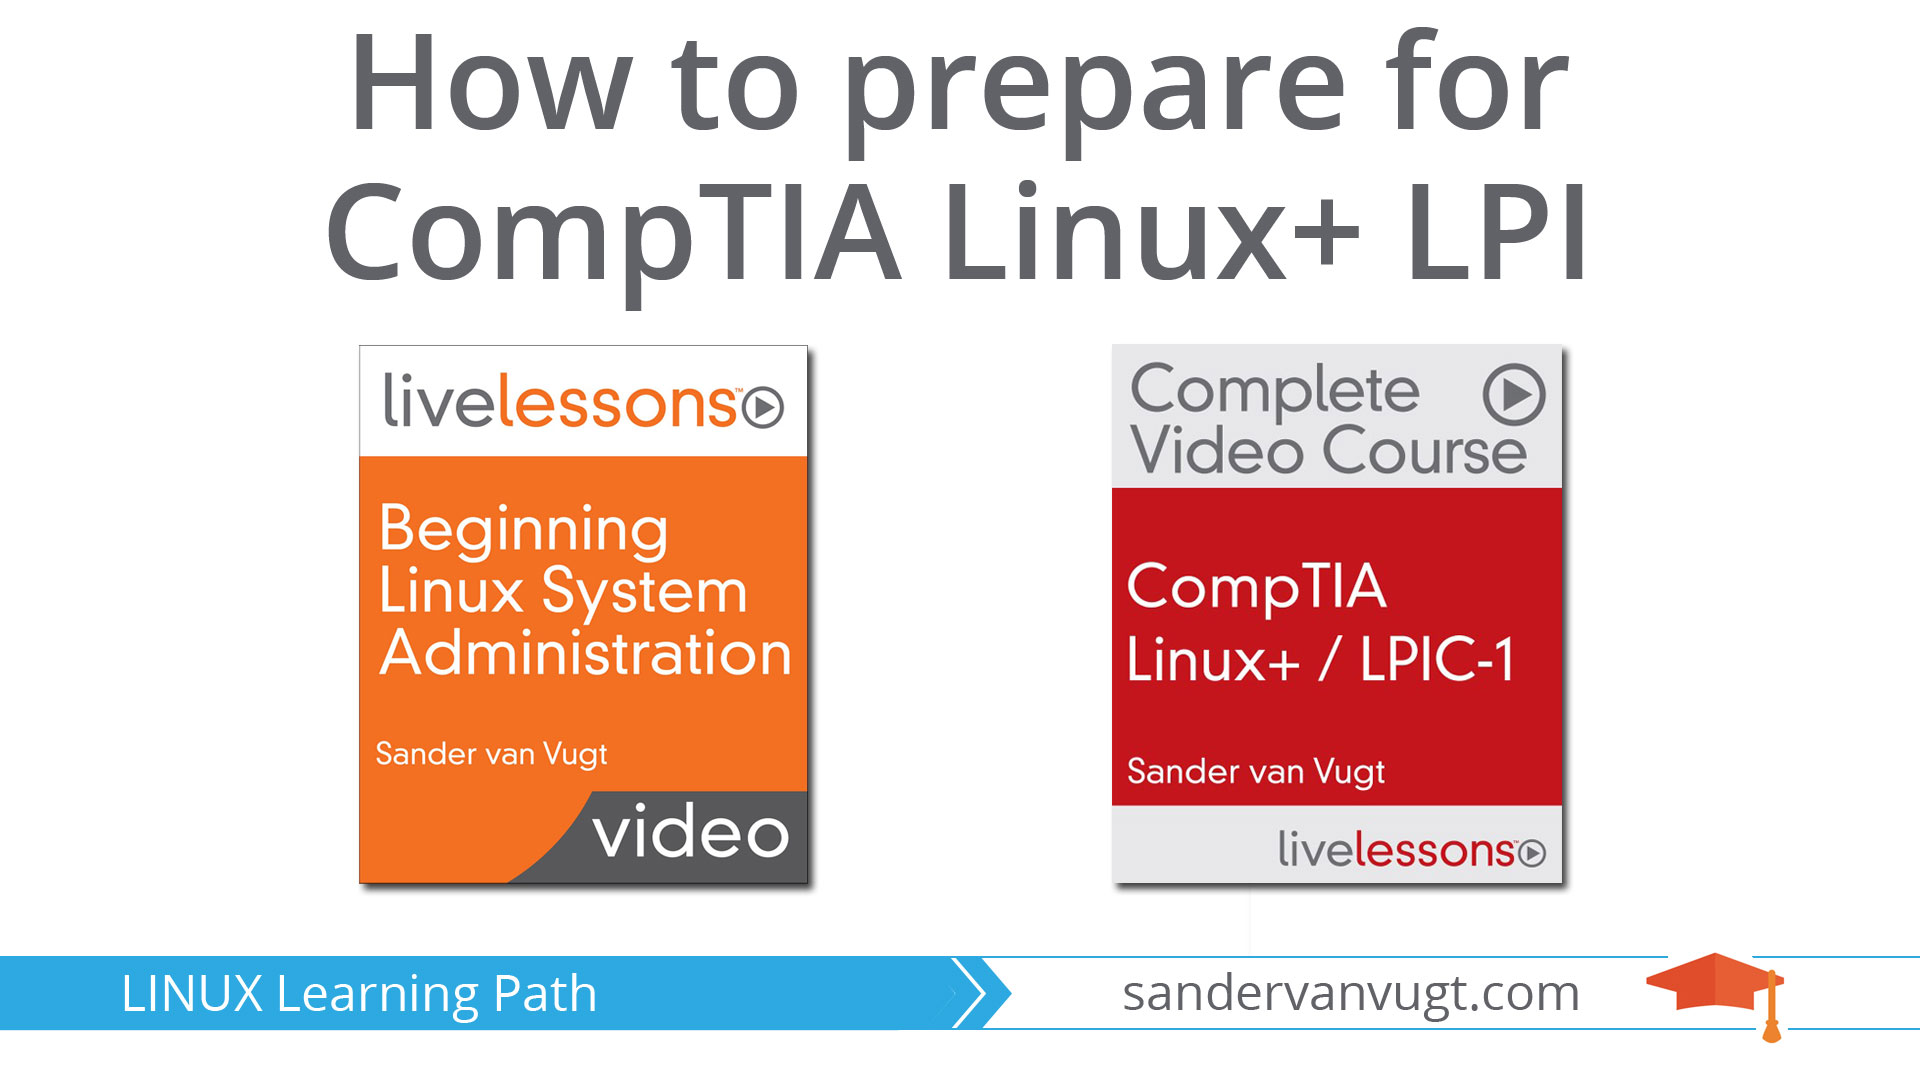 How to prepare for CompTIA Linux+ powered by LPI certification